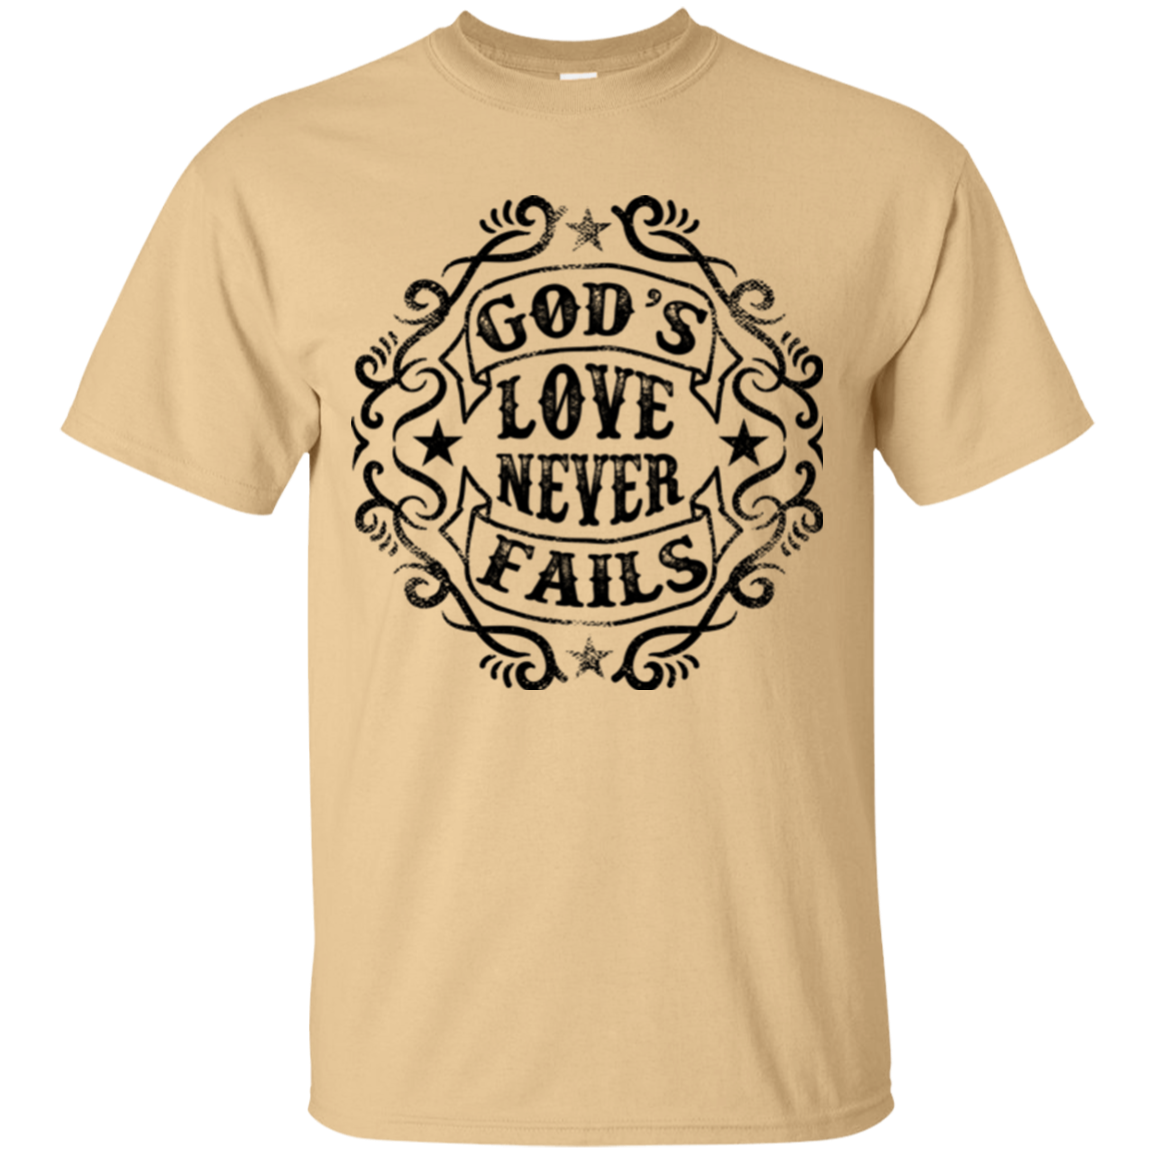 GODS LOVE NEVER FAILS T-SHIRT